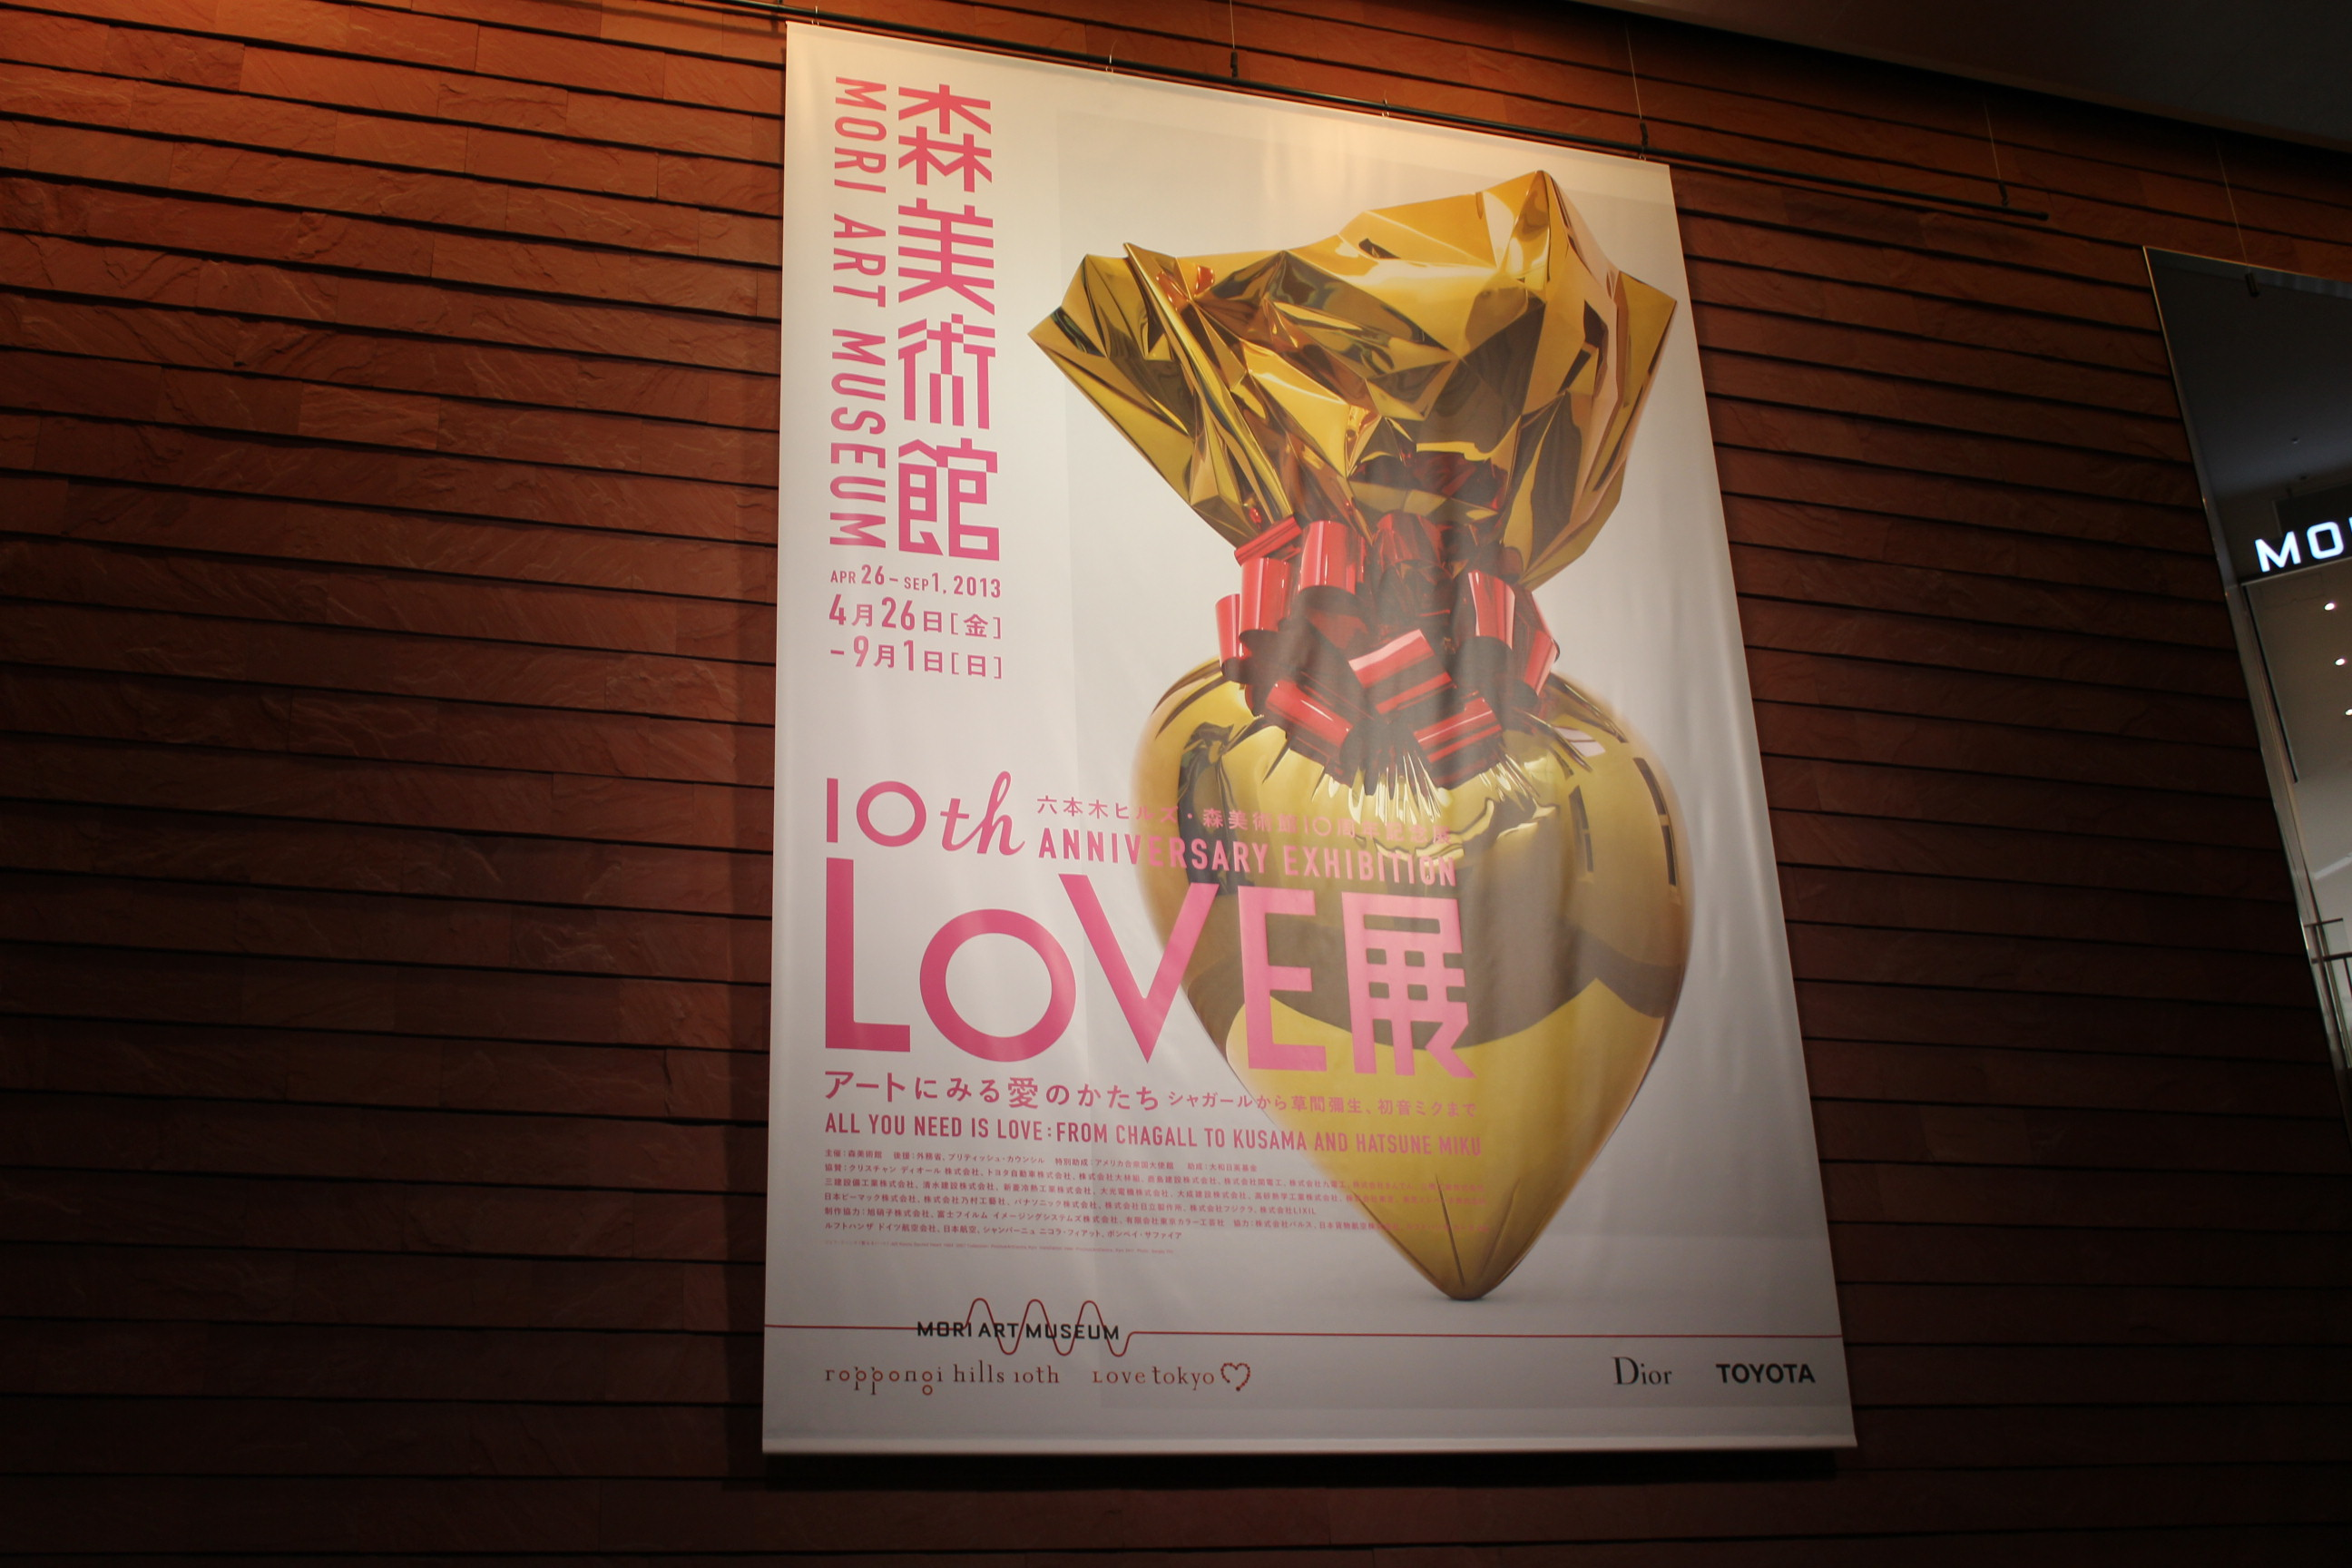 Roppongi Hills and Mori Art Museum 10th Anniversary Exhibition All You Need Is LOVE: From Chagall to Kusama and Hatsune Miku (Entrance poster of Mori Art Museum)